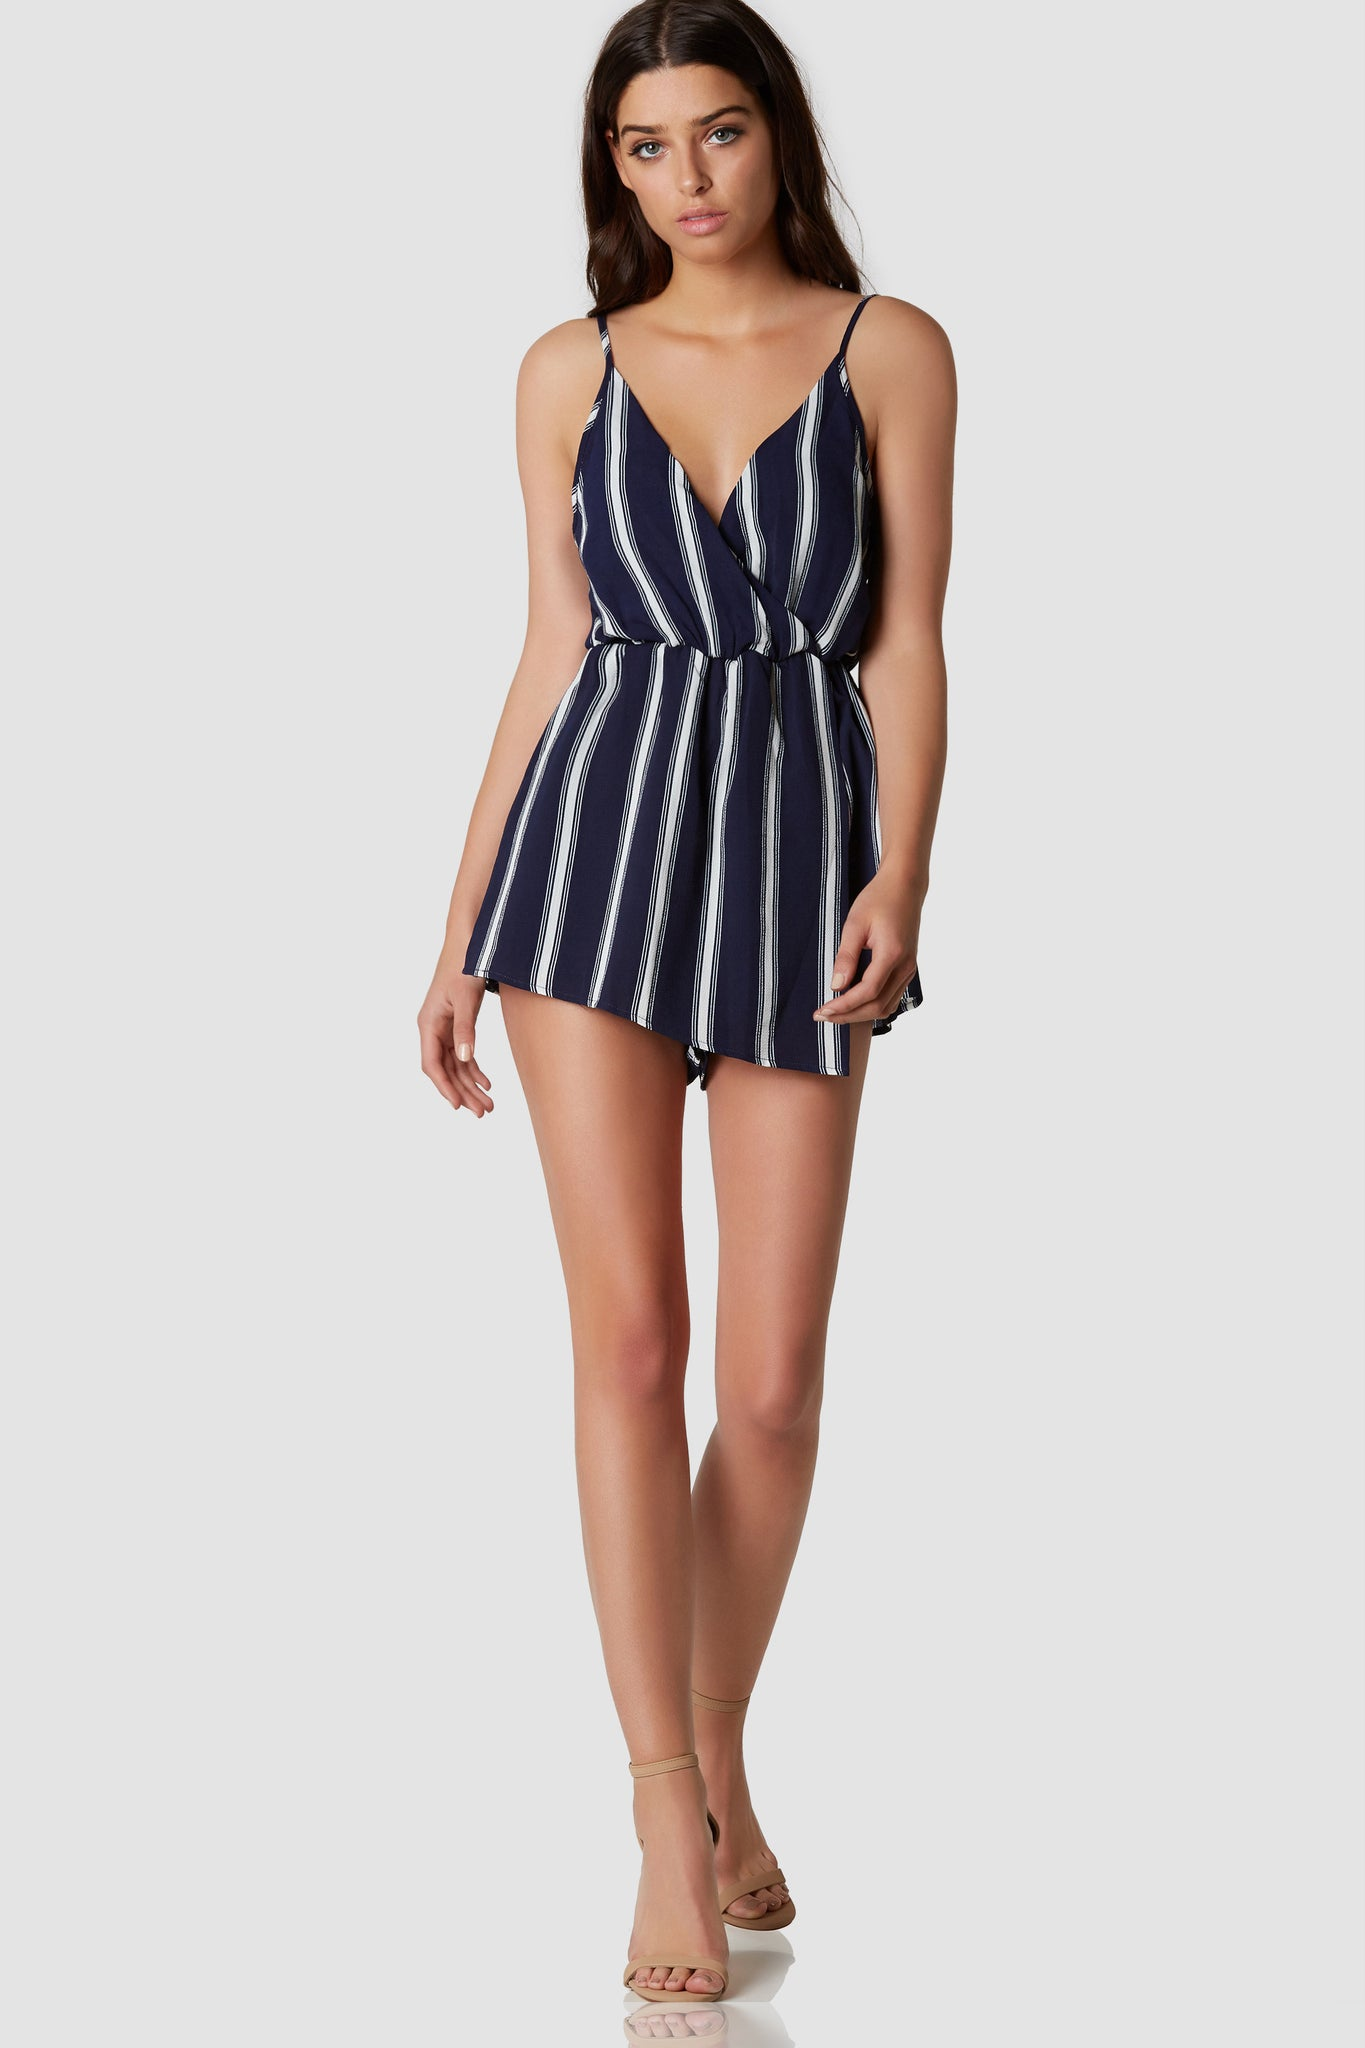 Fully lined spaghetti strap romper with overlap V-neckline. Stripe patterns throughout with front wrap design.